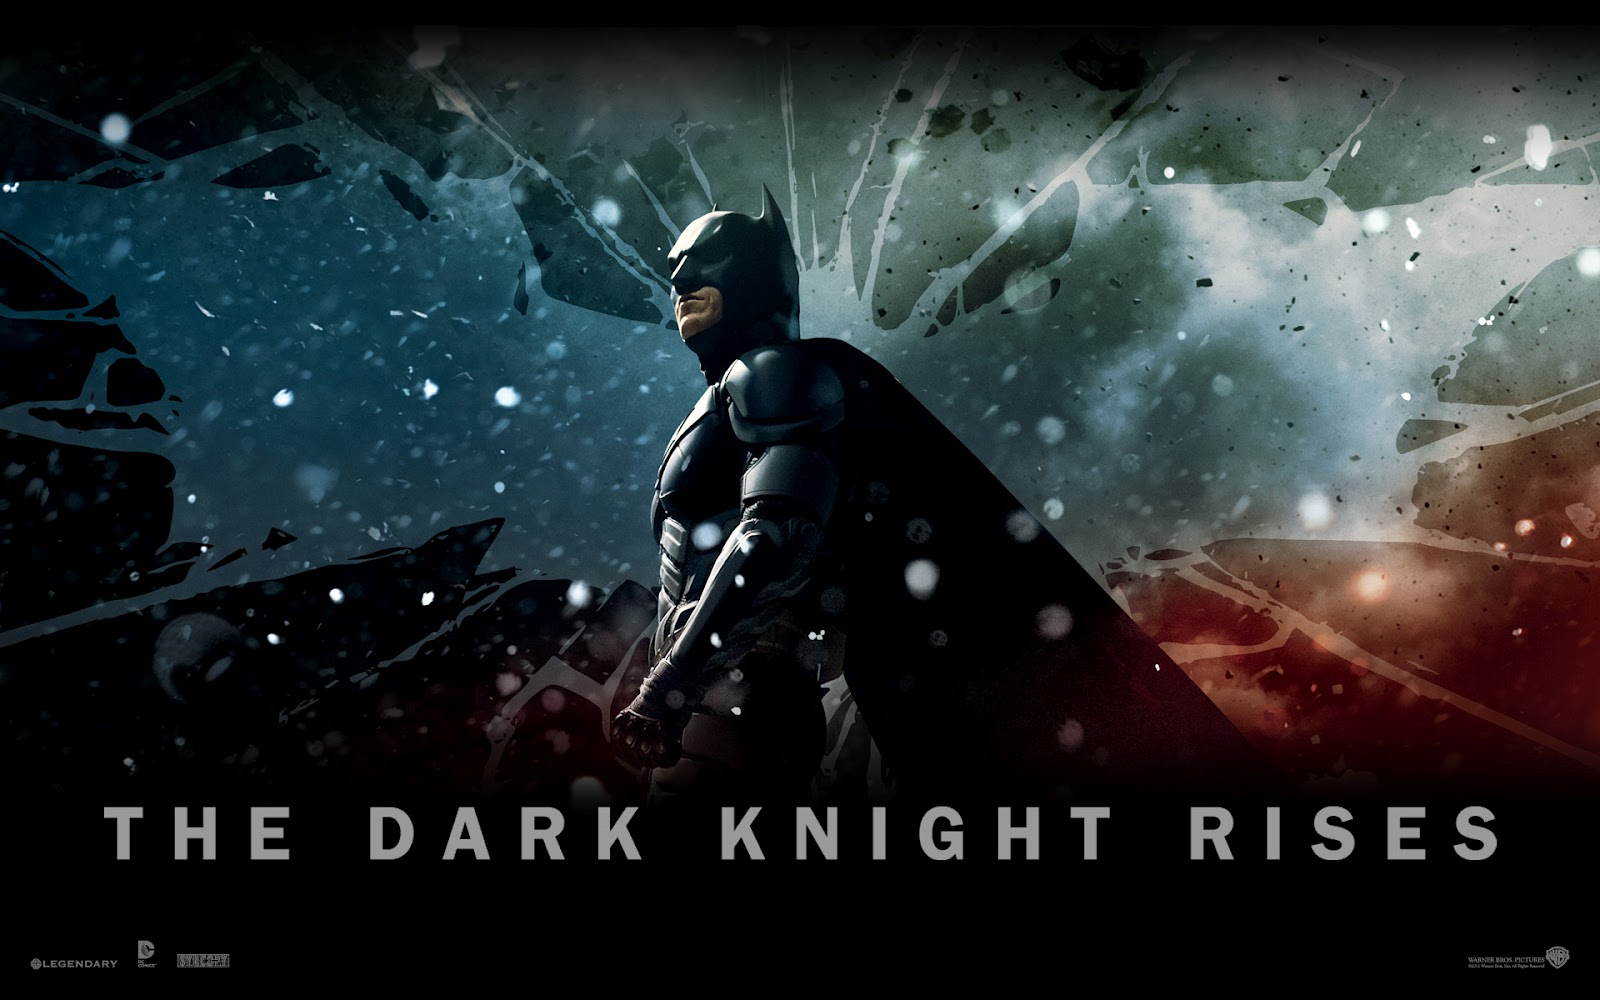 THE DARK KNIGHT RISES Mega Gallery Featuring 50 Images and 15 Posters